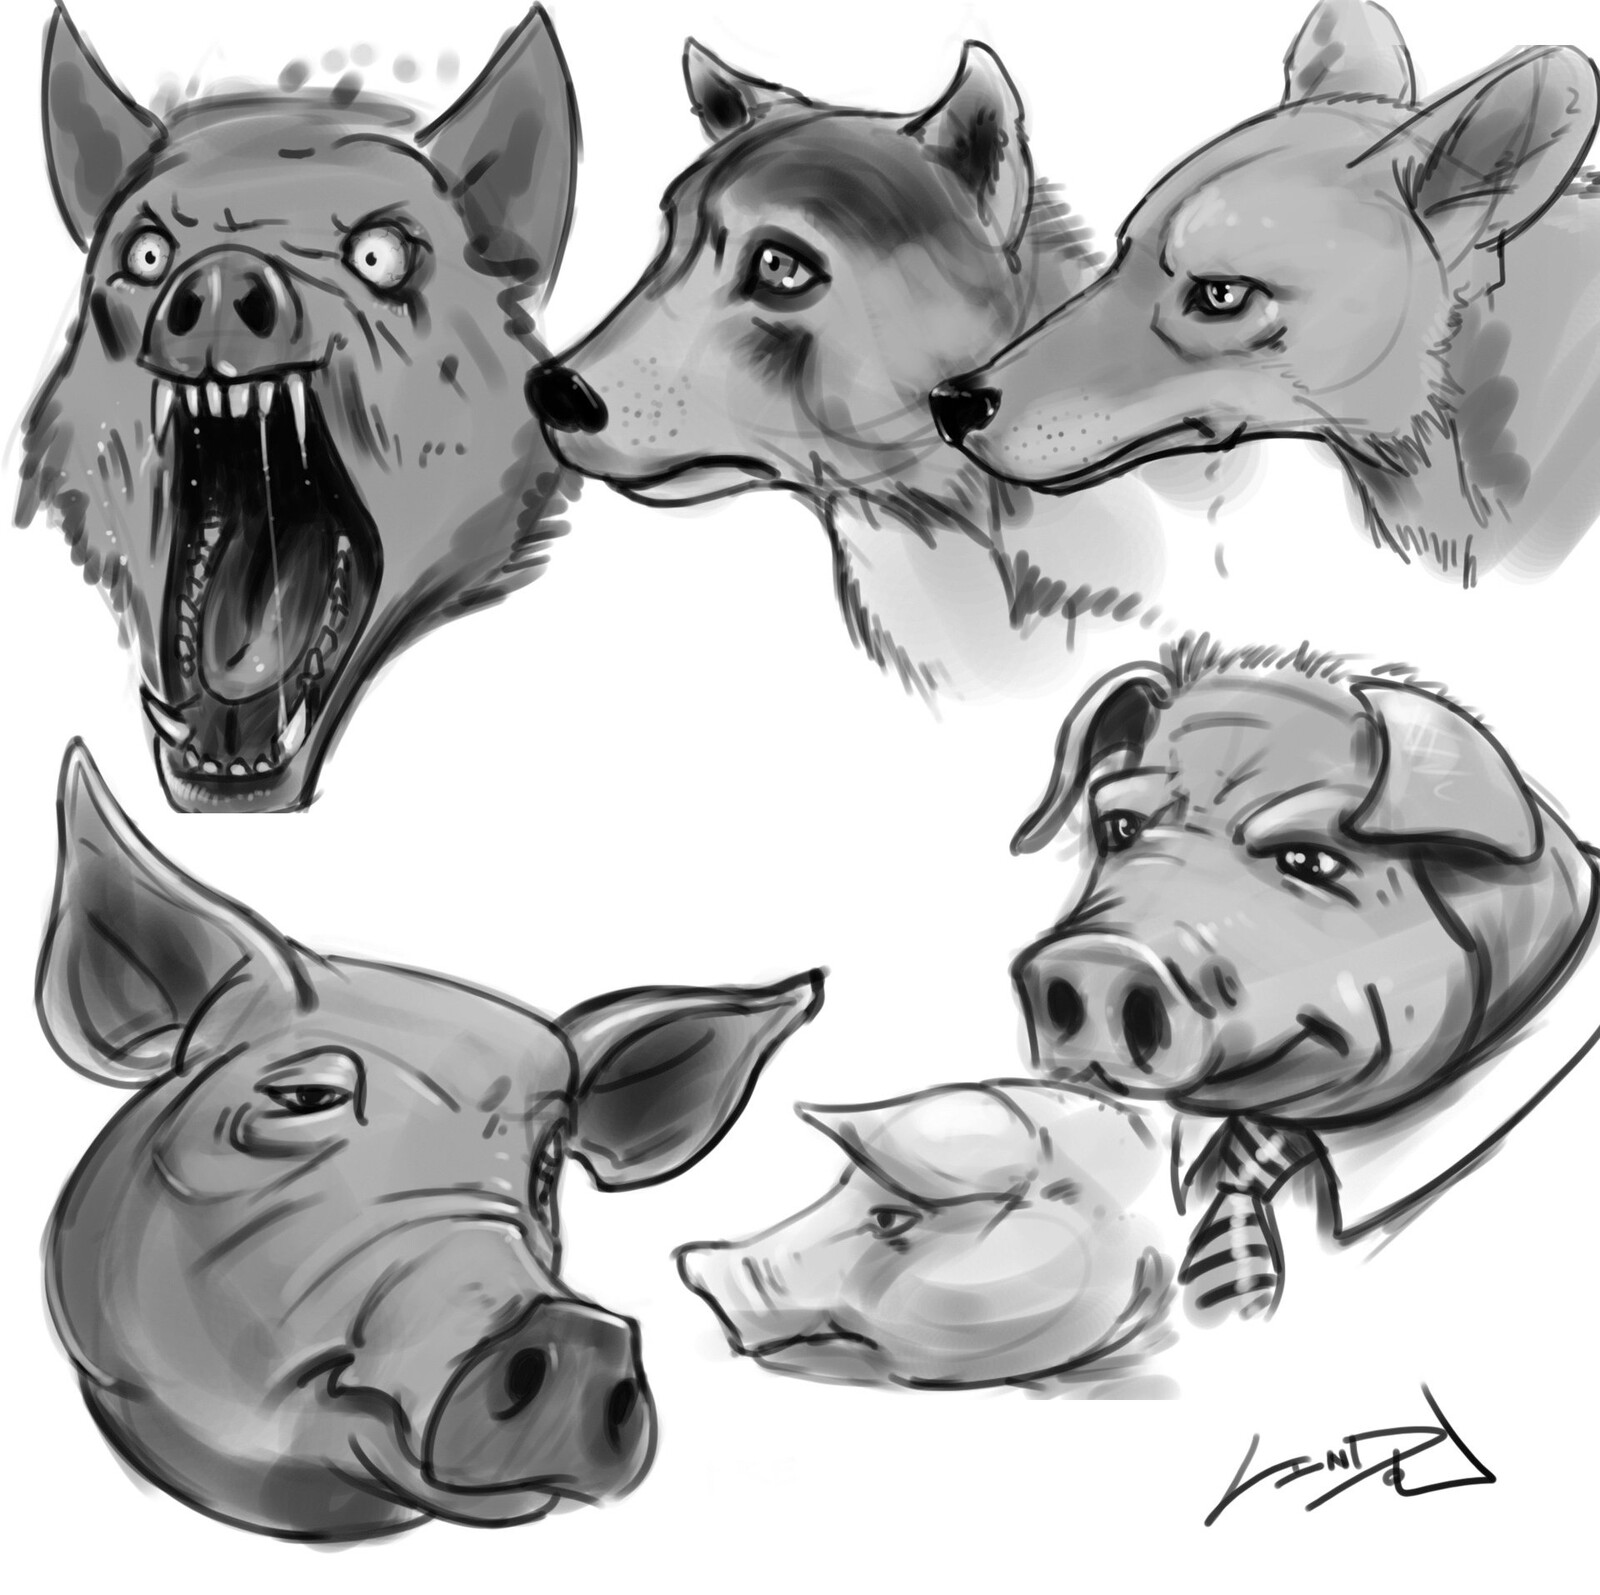 Sketches of some pigs and wolves.